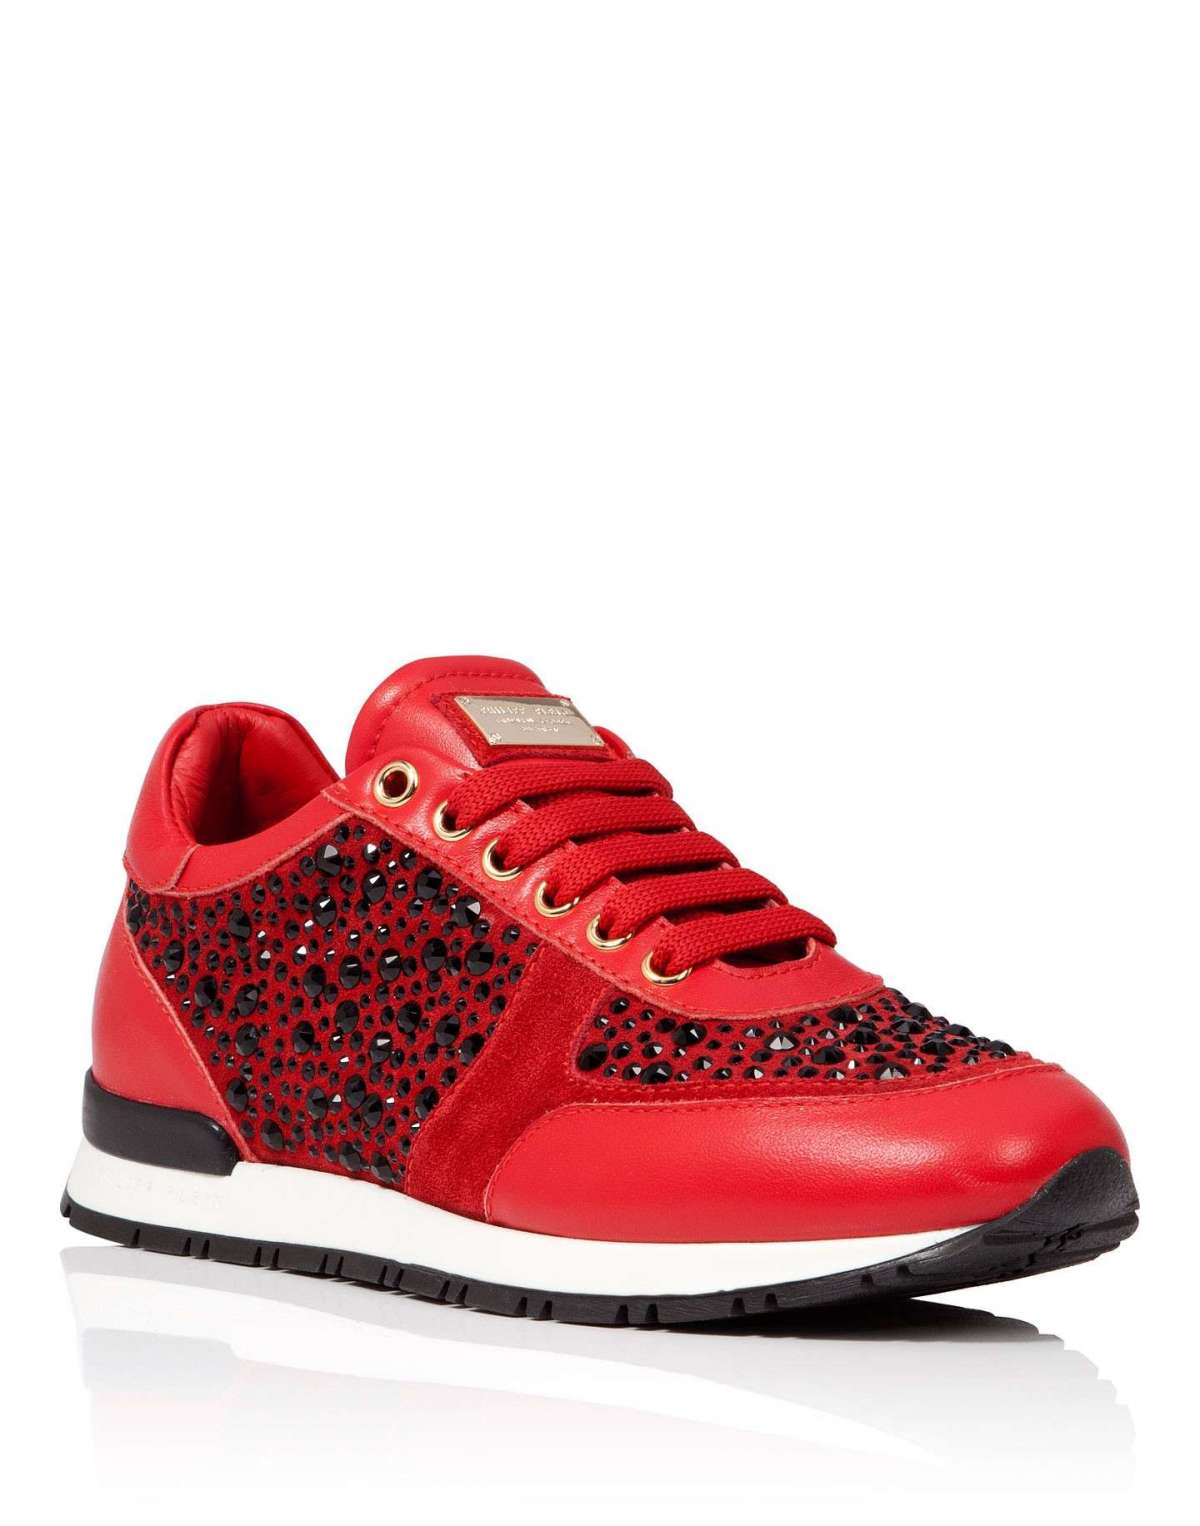 Sneakers rosse con strass